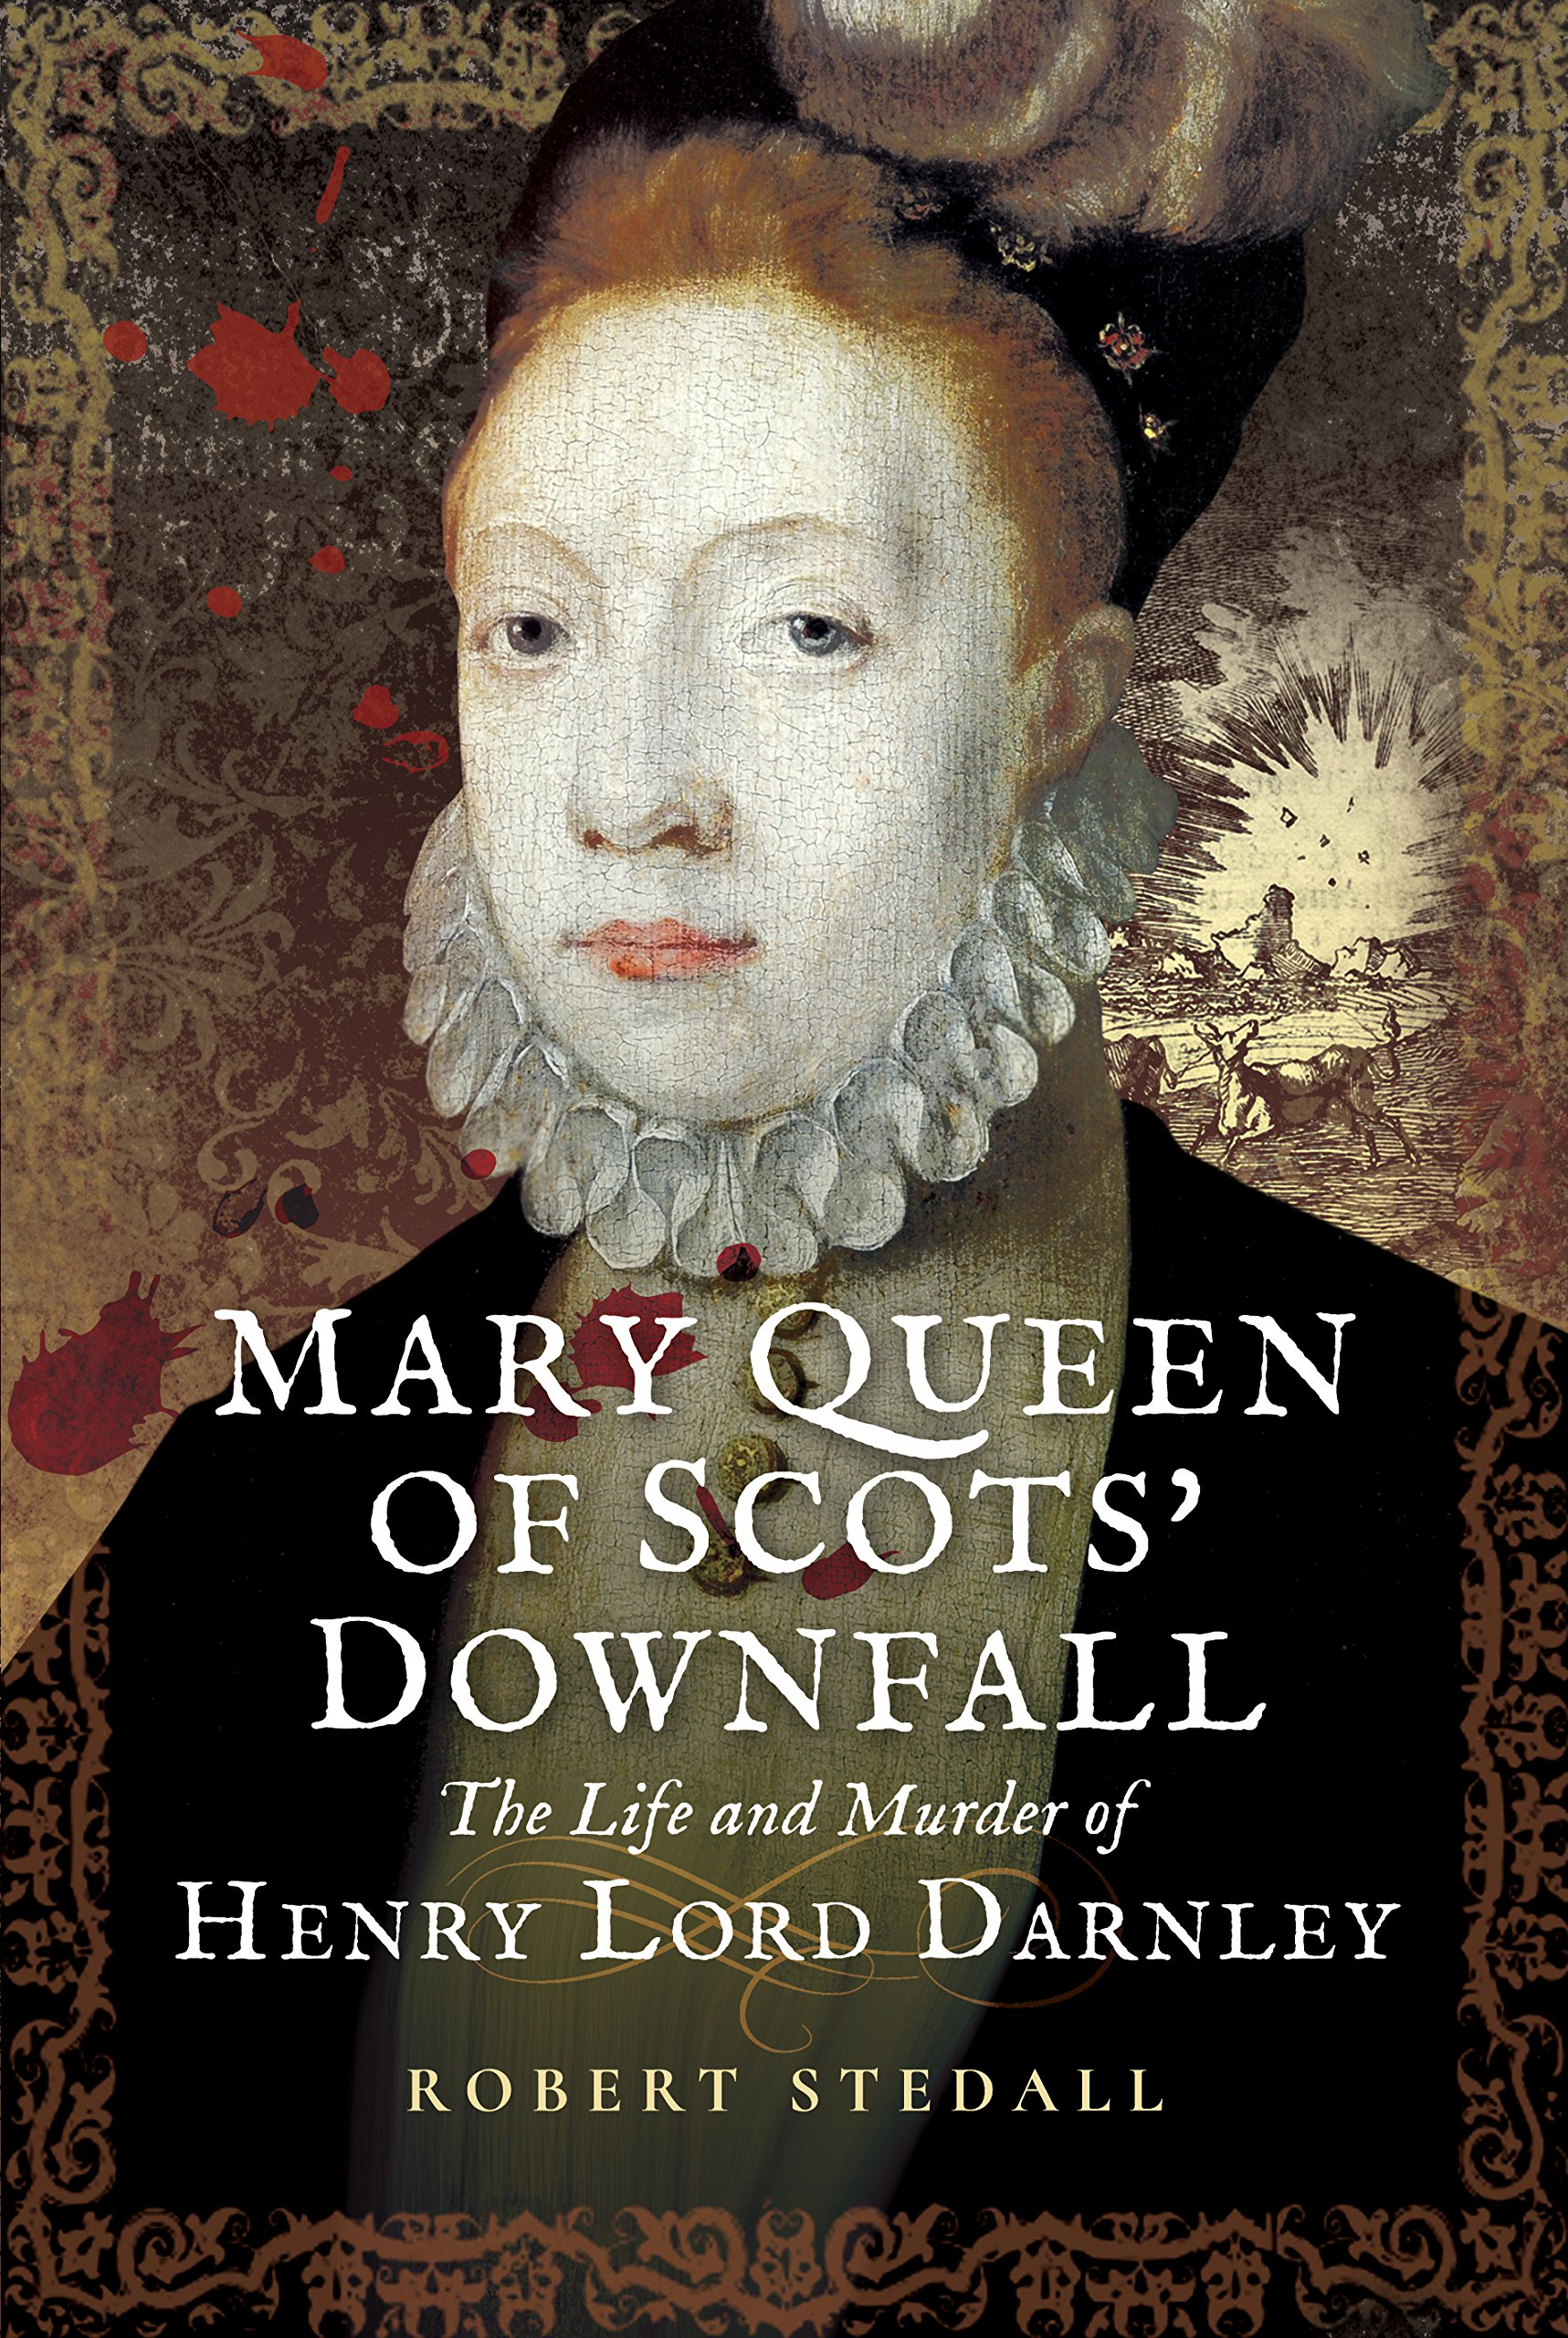 mary queen of scots downfall the life and murder of henry lord